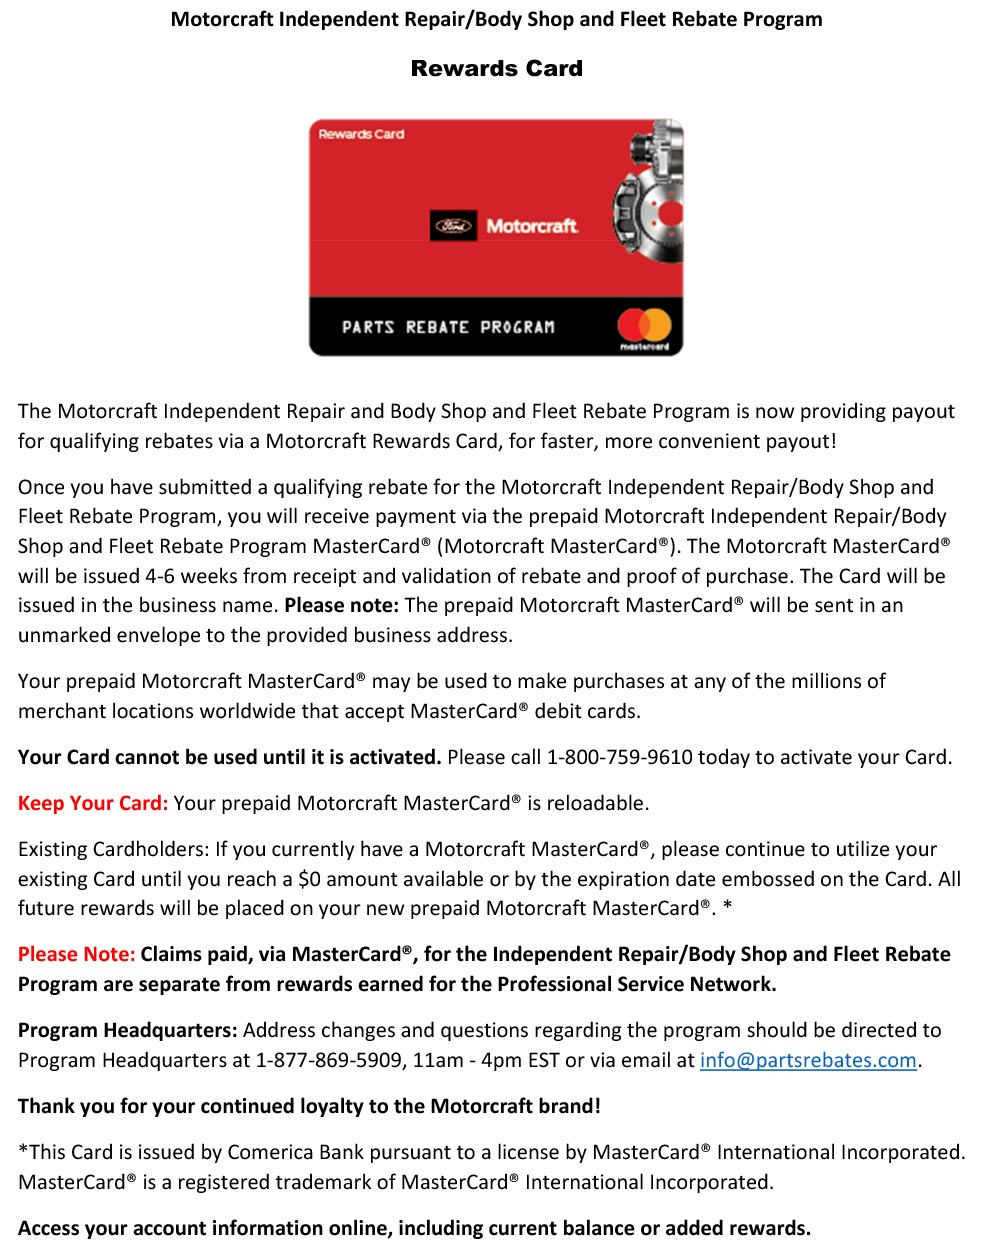 Motorcraft-Rewards-Card-Detail-1.jpg